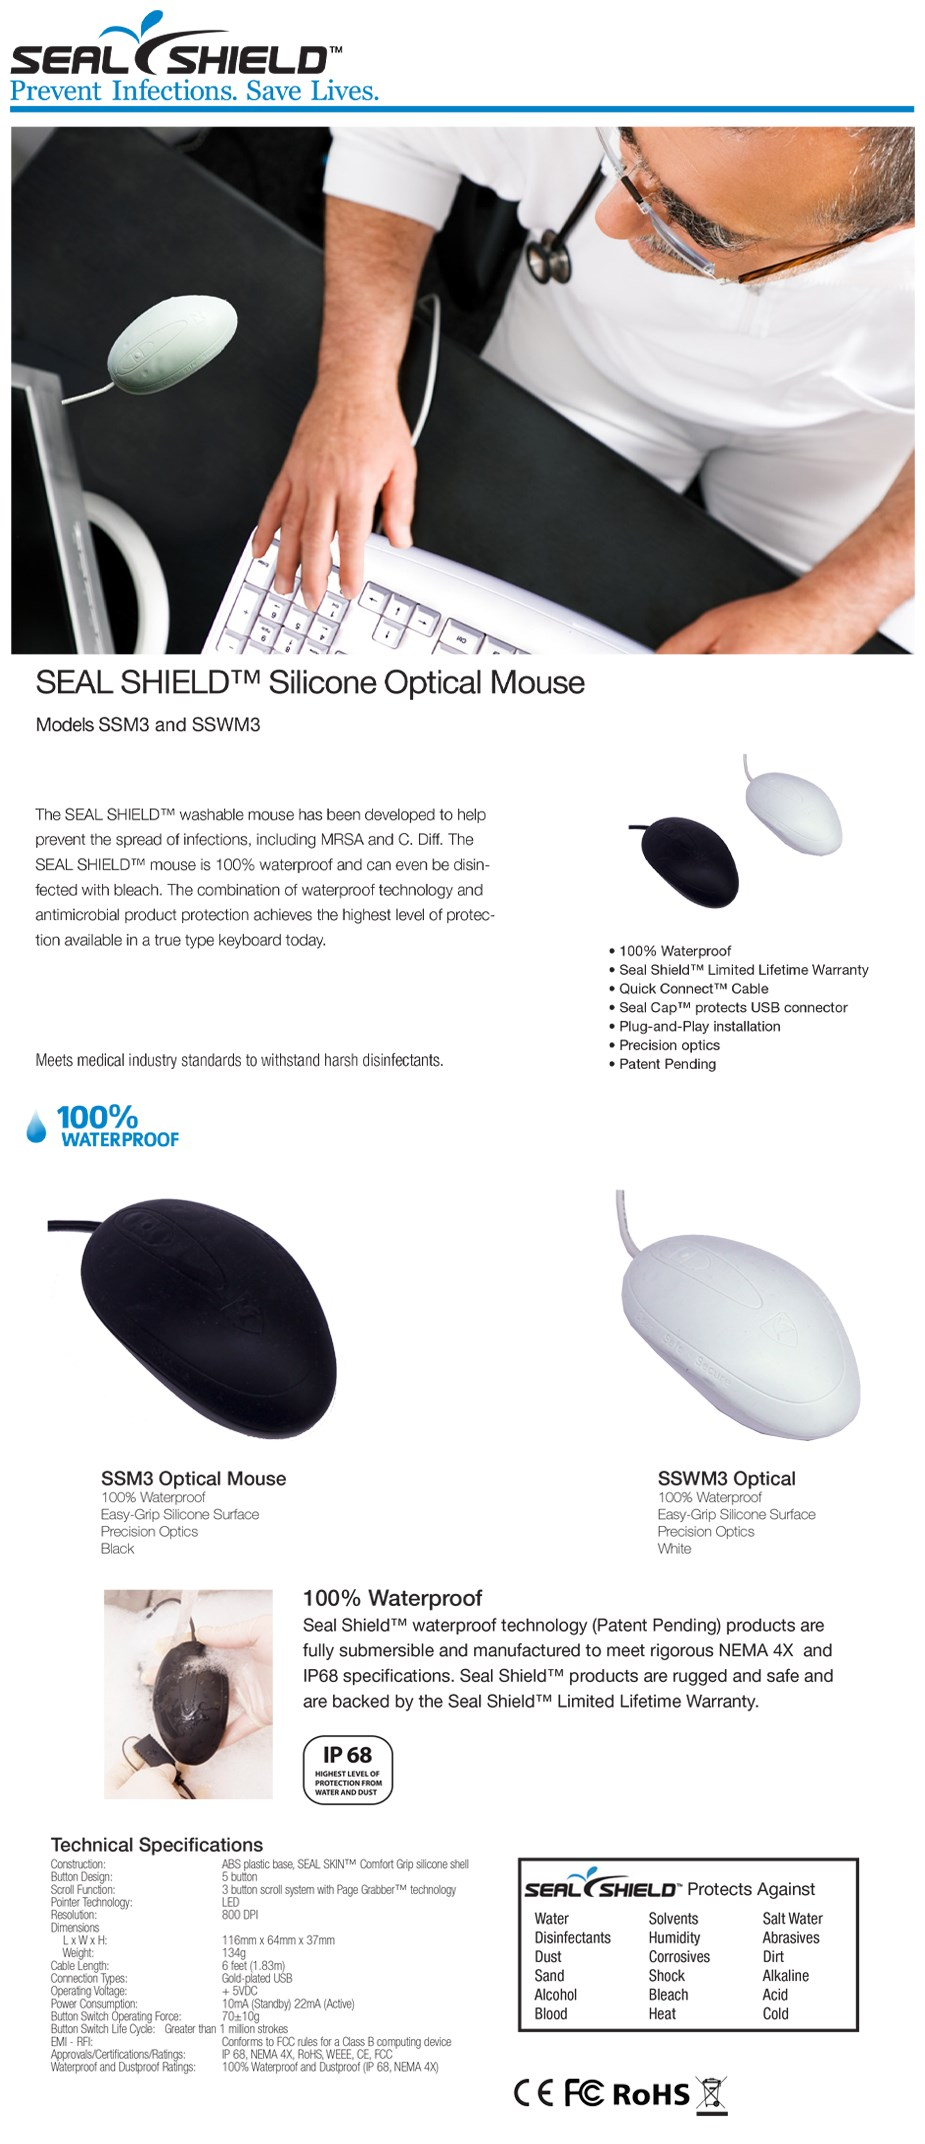 Seal Shield Silicone Waterproof Optical Mouse - White - Overview 1